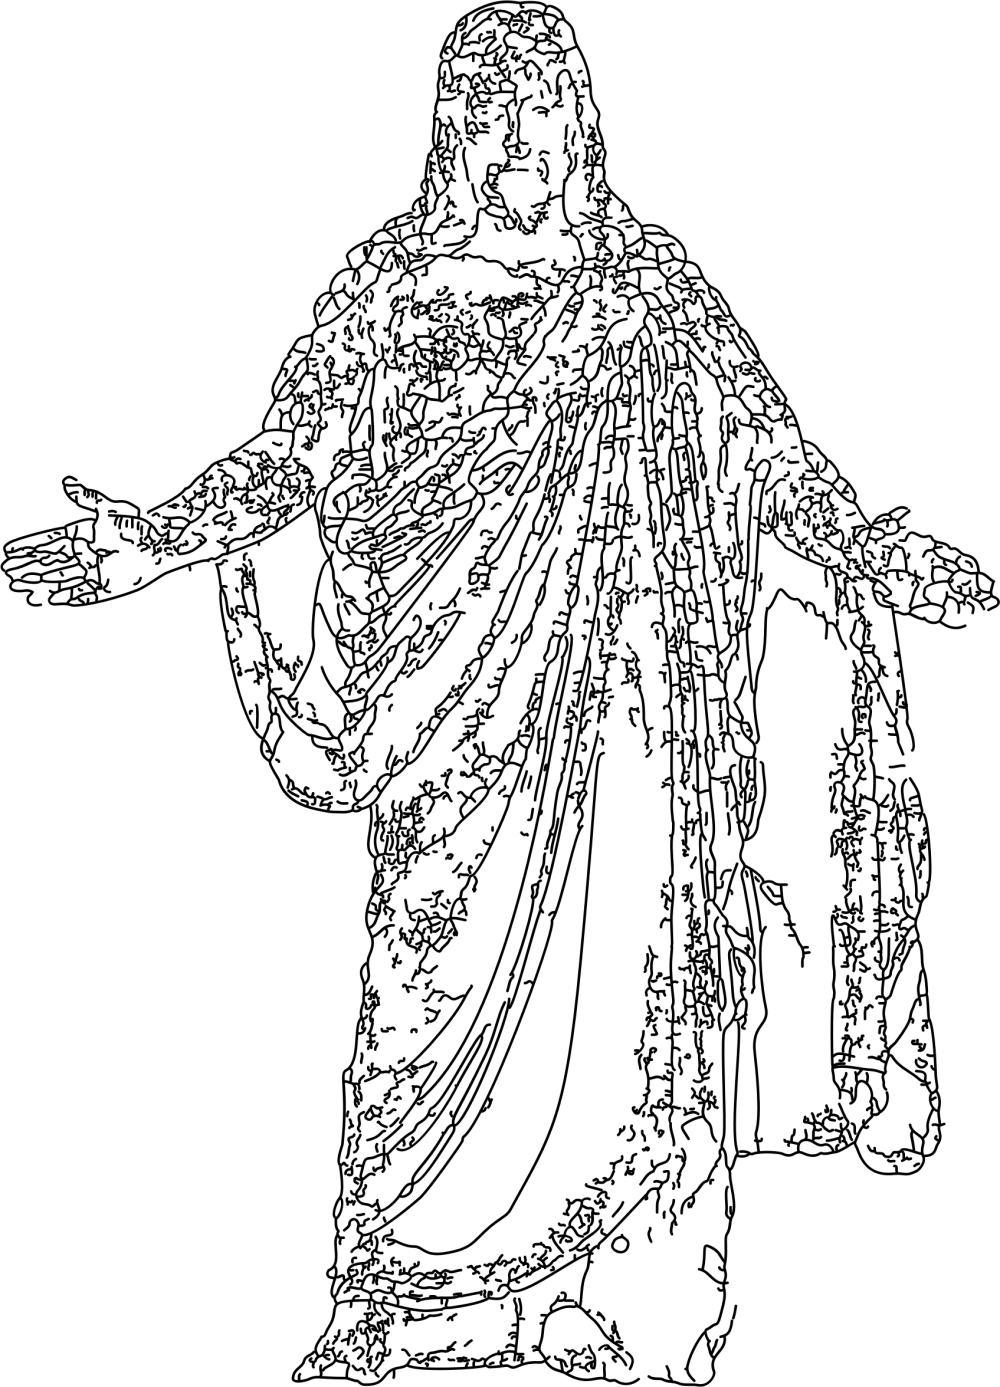 medium resolution of 1695x2352 drawing statue jesus transparent png clipart free download jesus line drawing